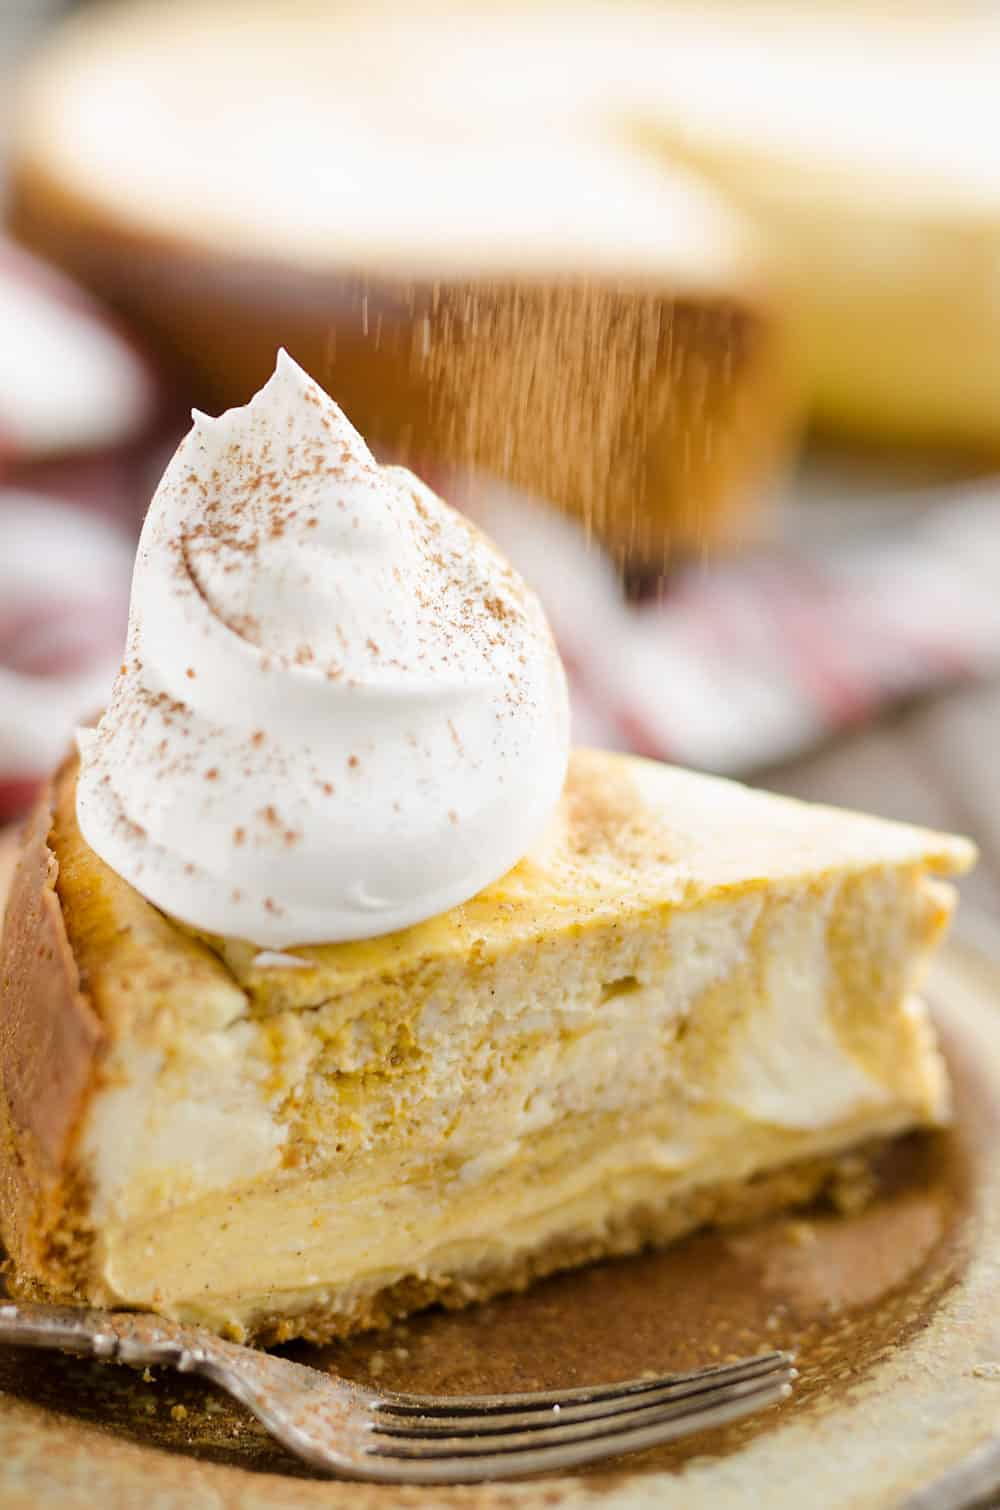 Pumpkin Swirl Cheesecake with cinnamon dusting